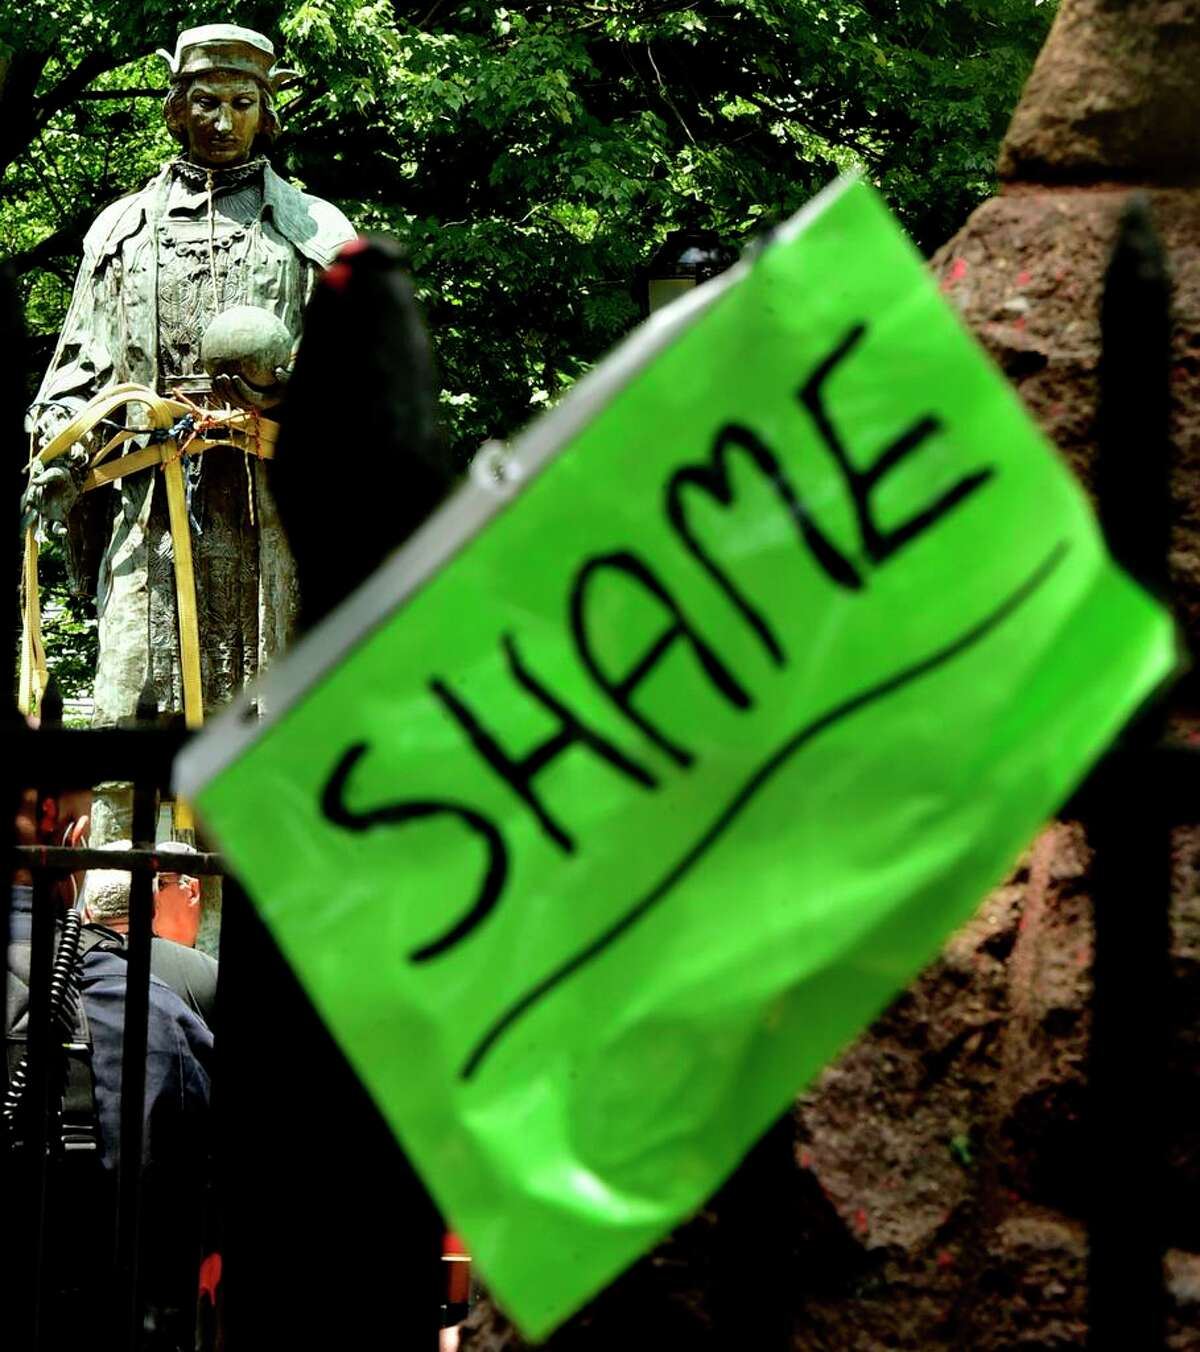 The statue of Christopher Columbus was removed from Wooster Square park June 24, 2020 hours after a skirmish erupted early in the morning between people of opposing viewpoints.